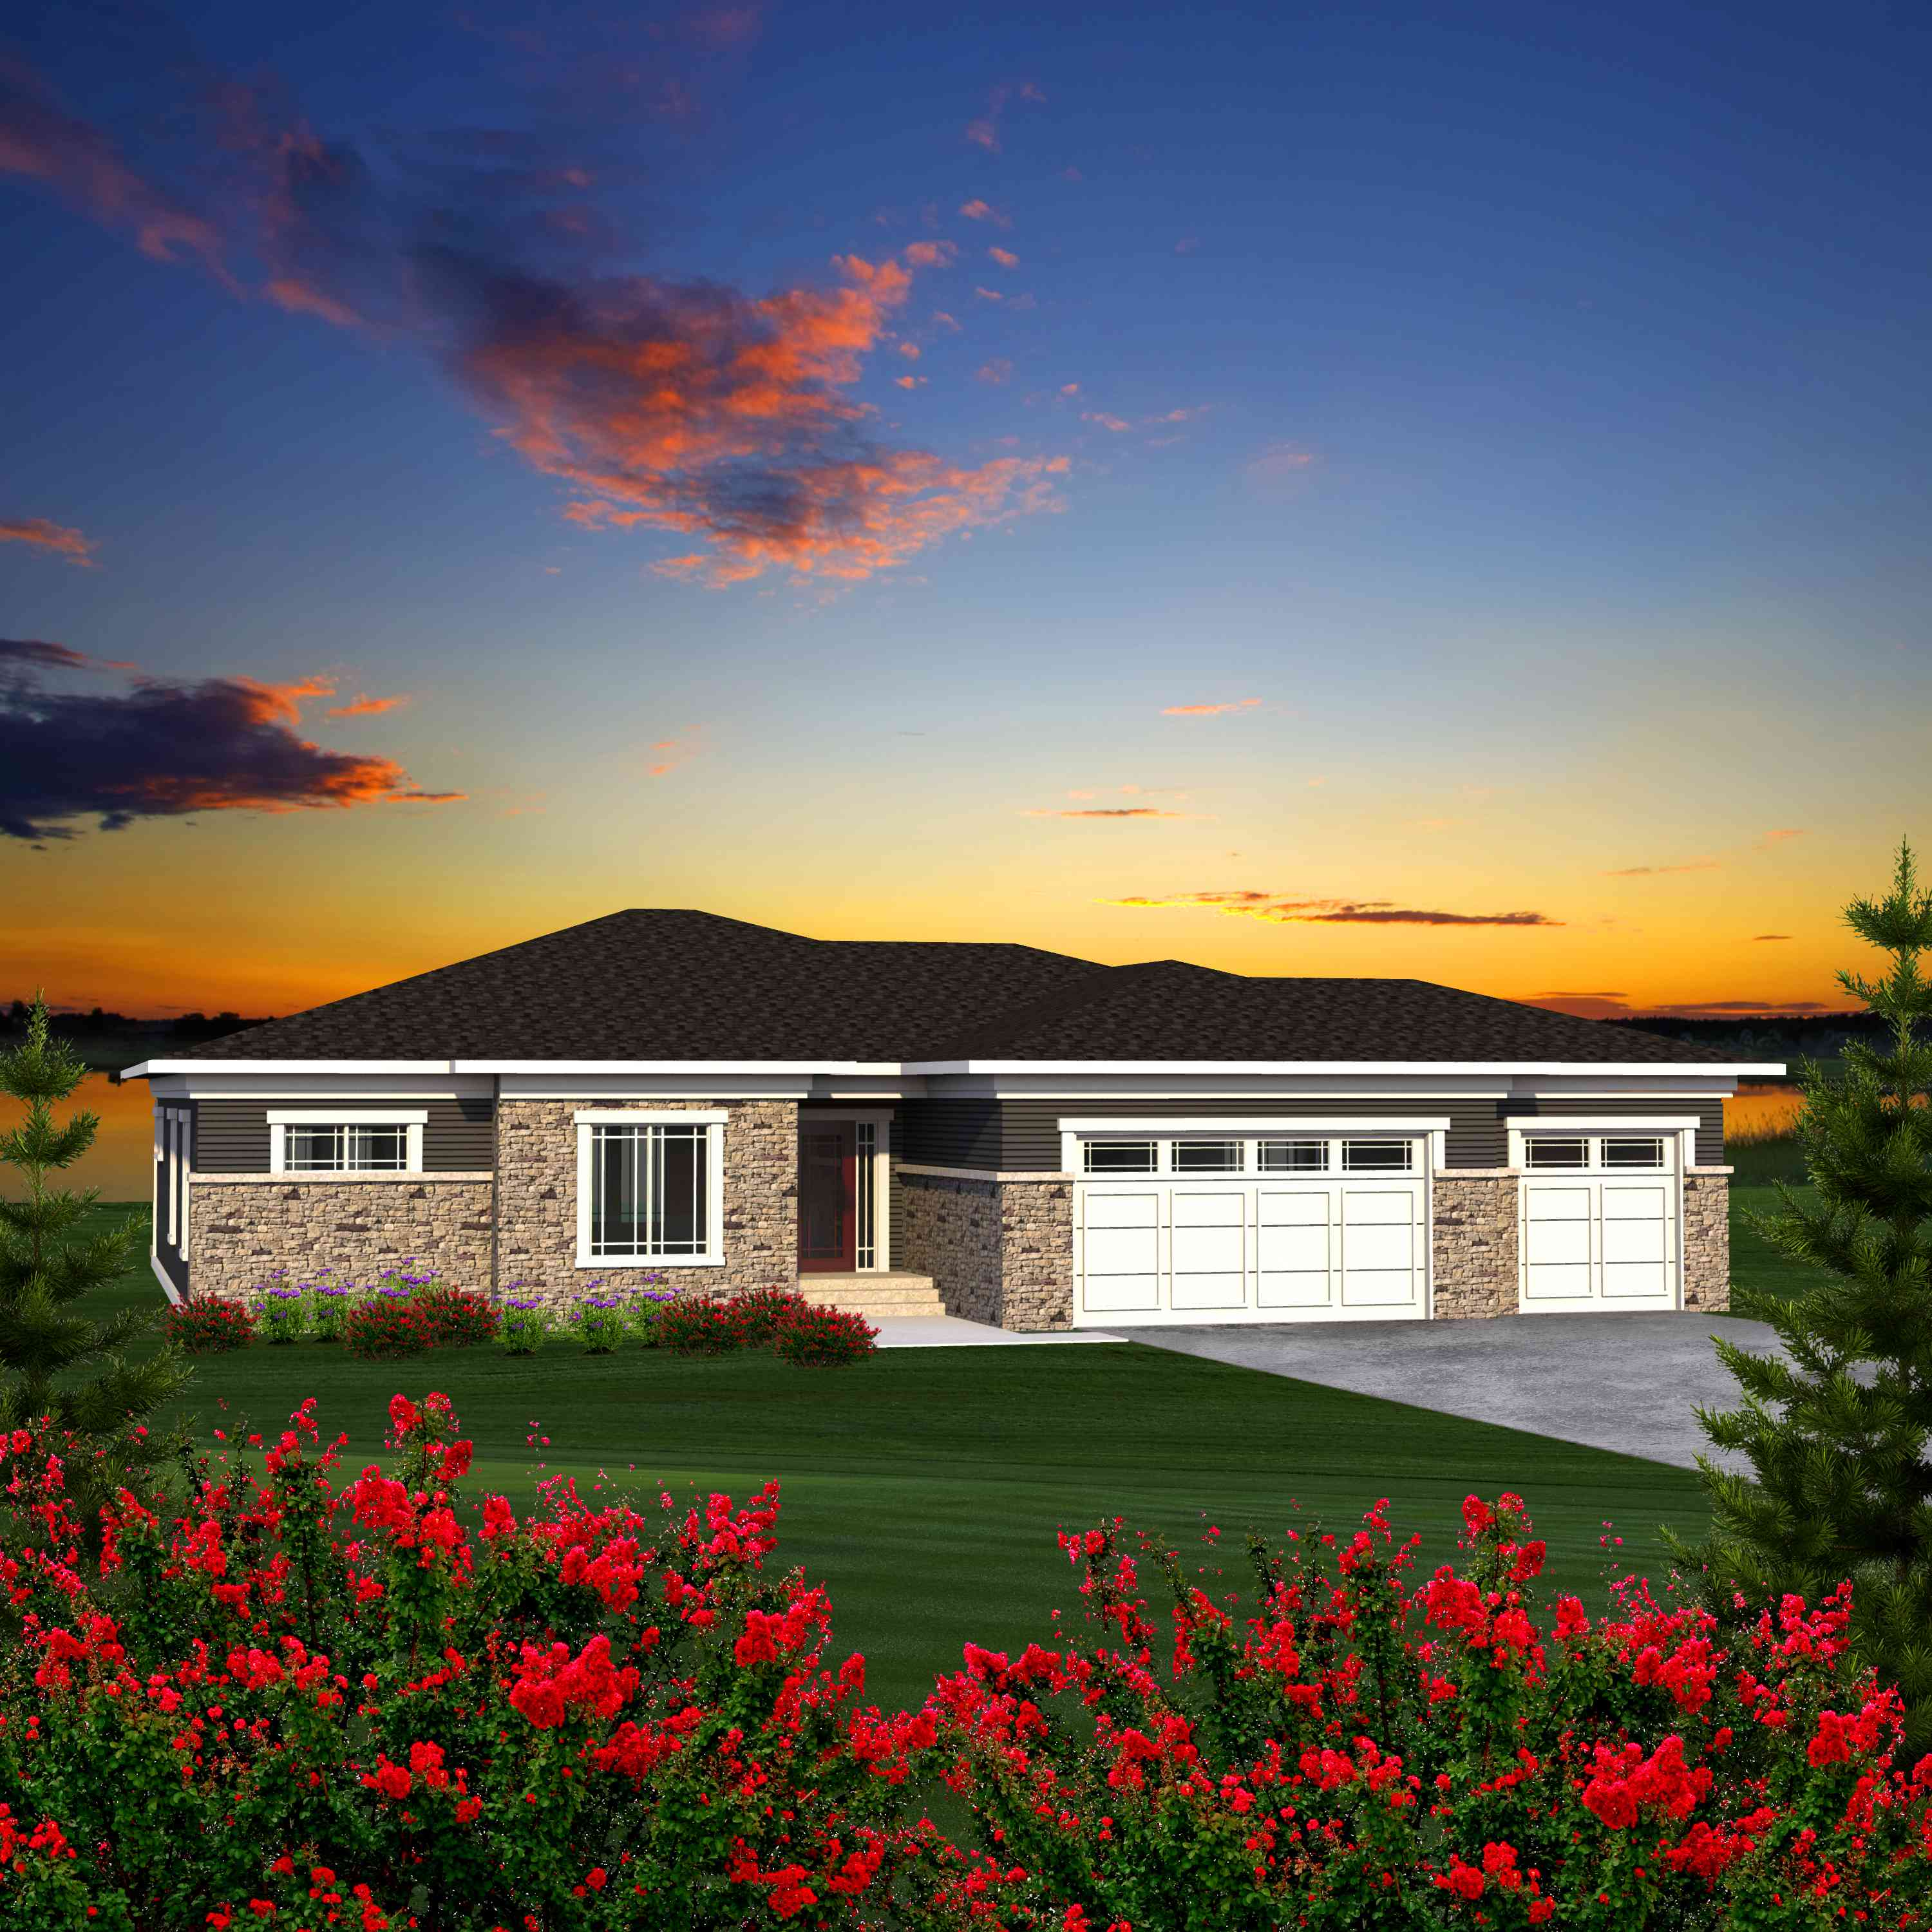 4 bed prairie style ranch house plan 89941ah 1st floor for Prairie style ranch